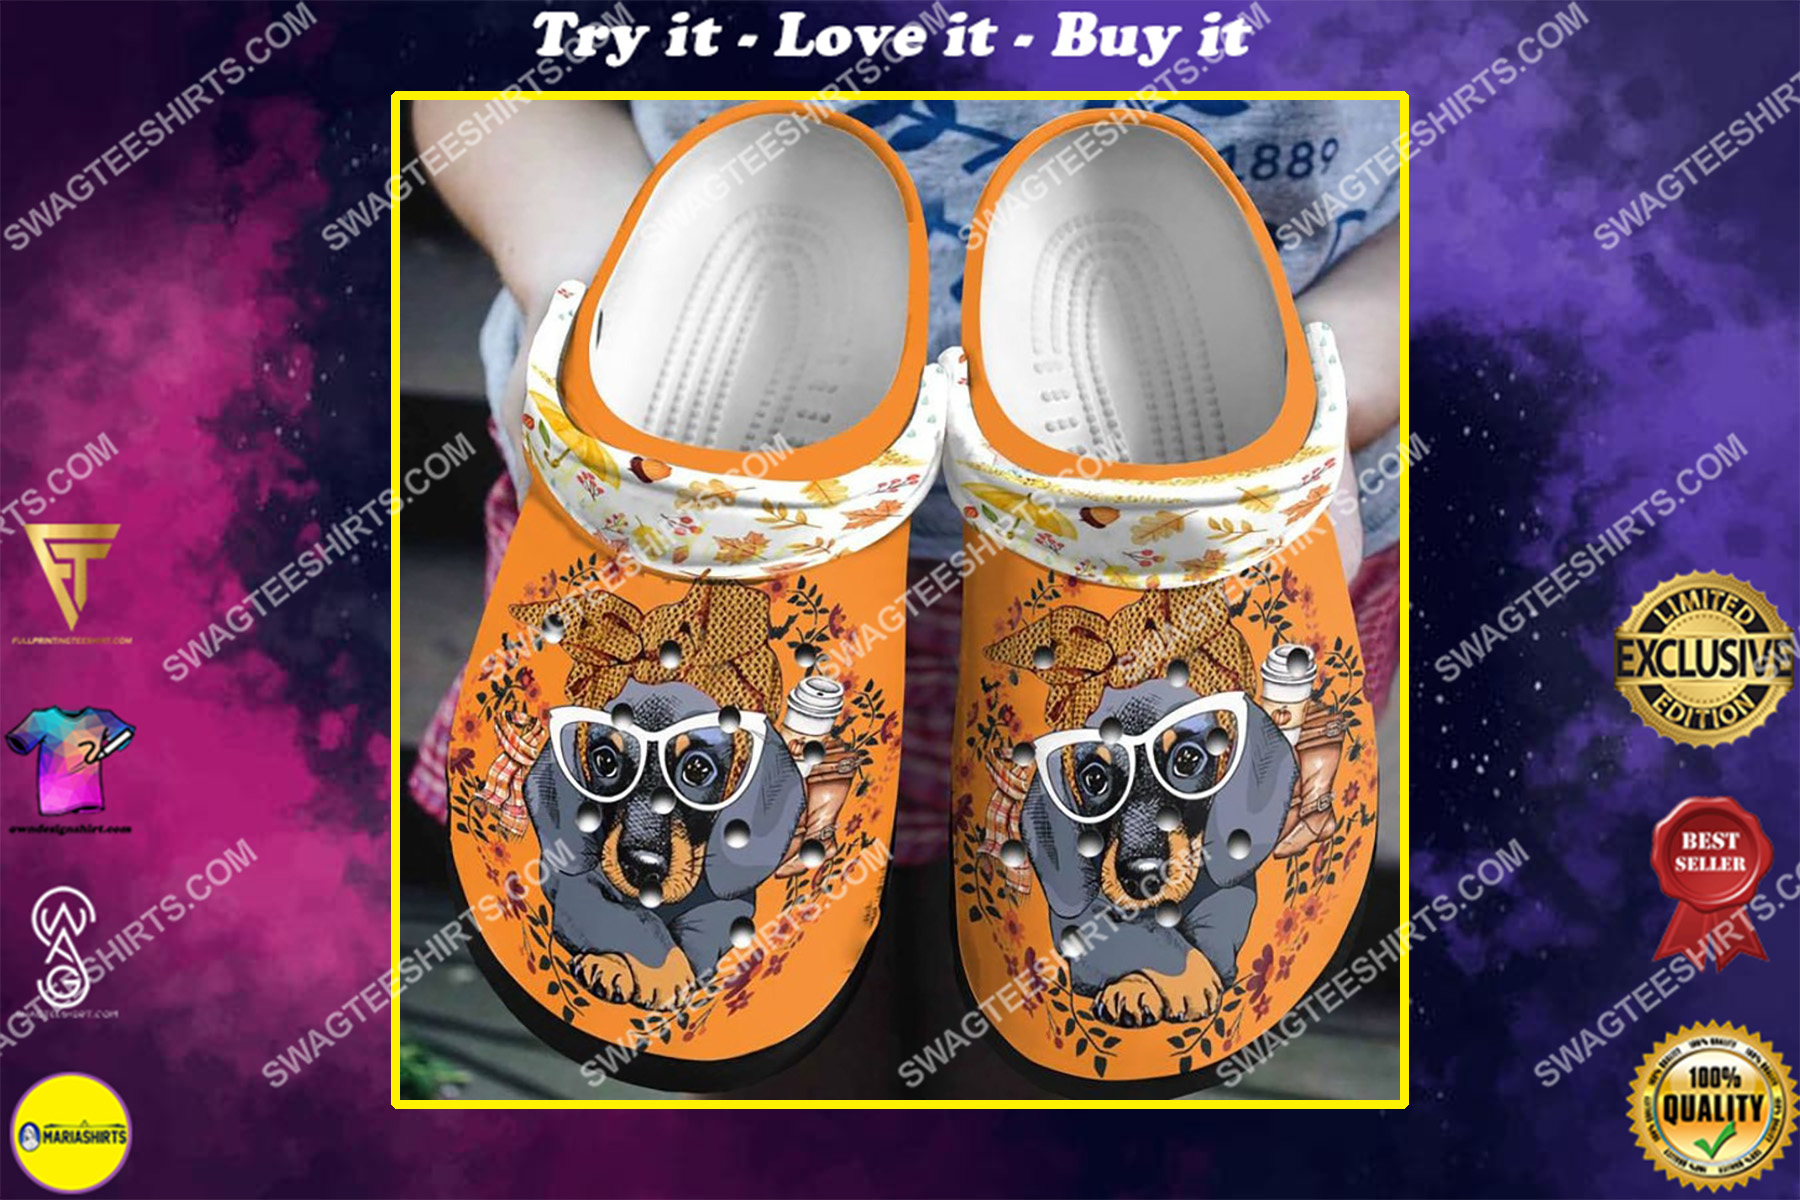 1athe dachshund and flowers all over printed crocs crocband clog